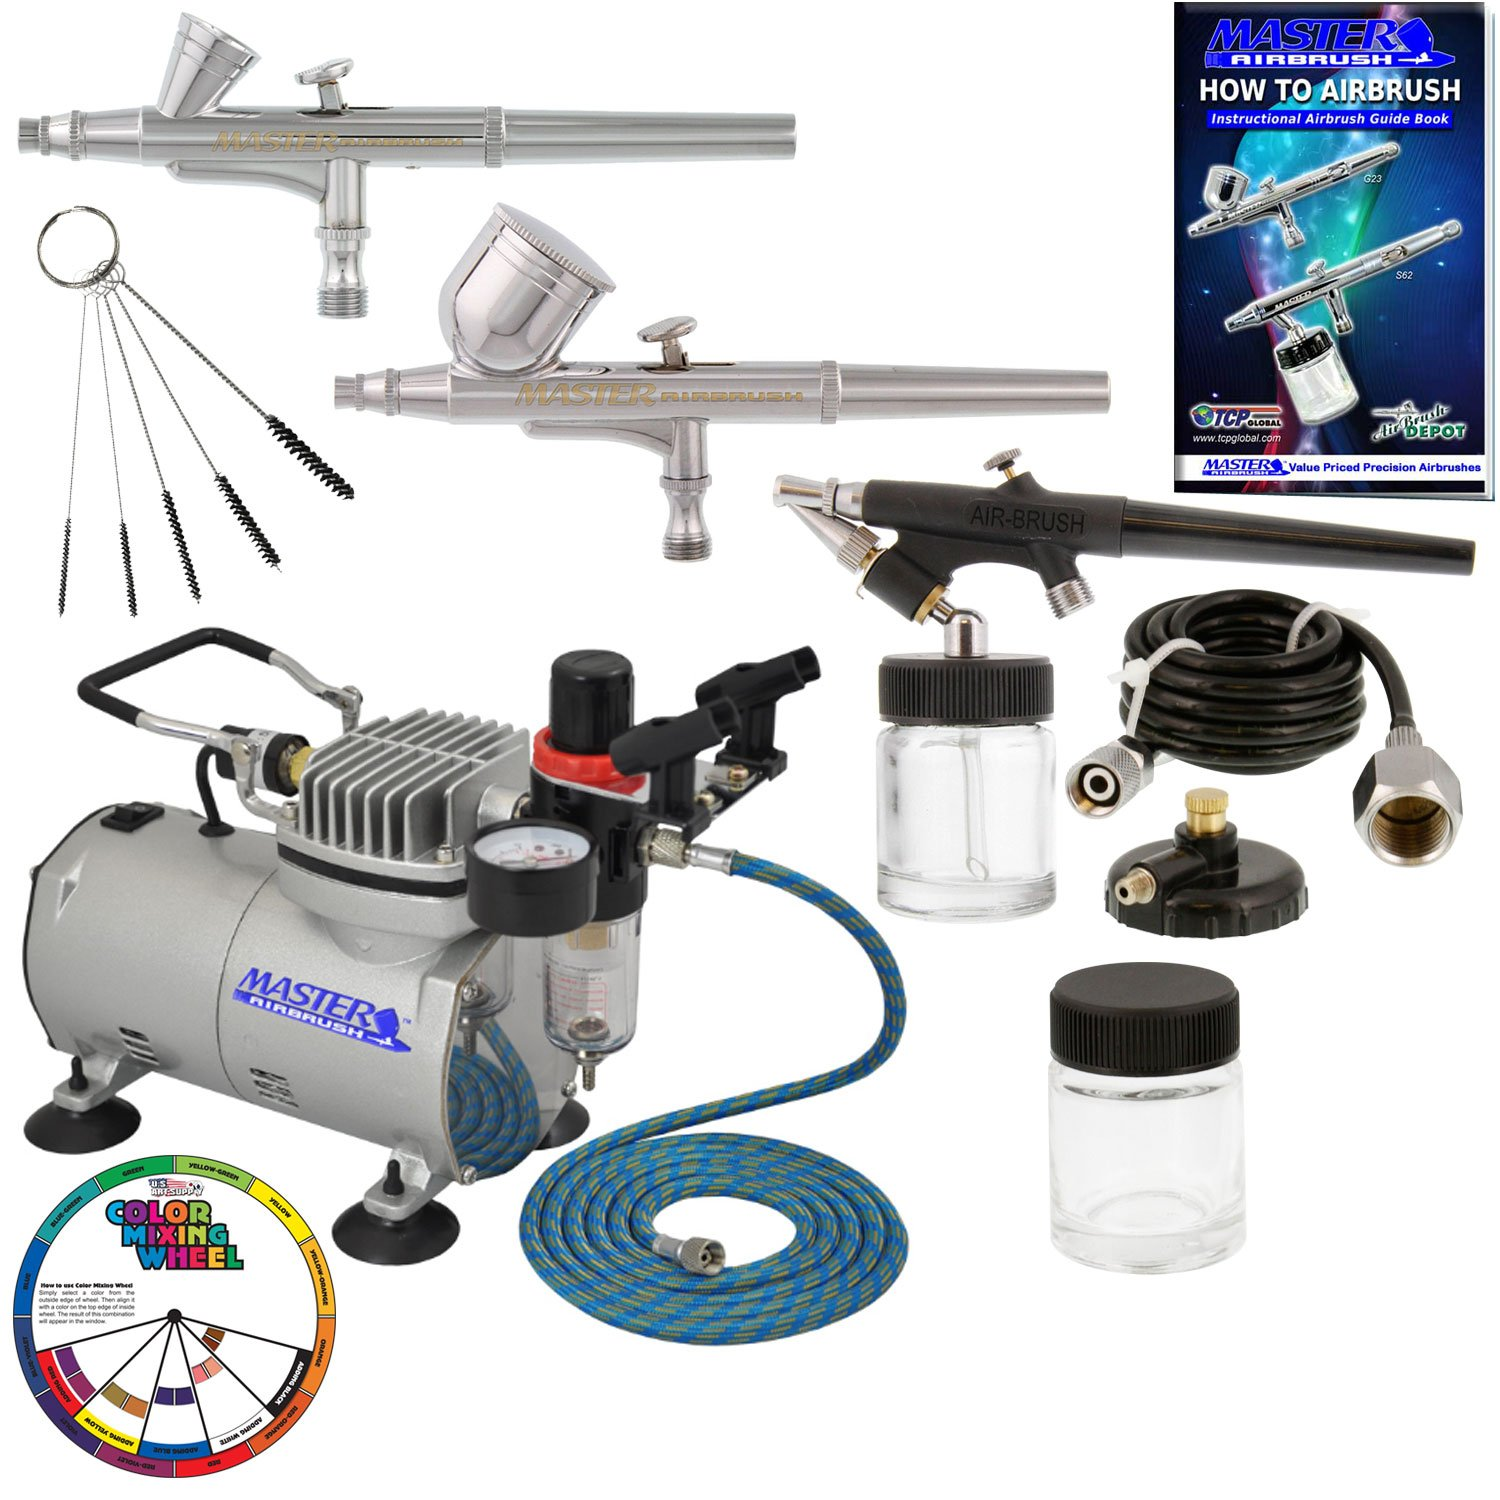 Master Airbrush Professional 3 Airbrush Kit with Compressor and Air Filter/Regulator